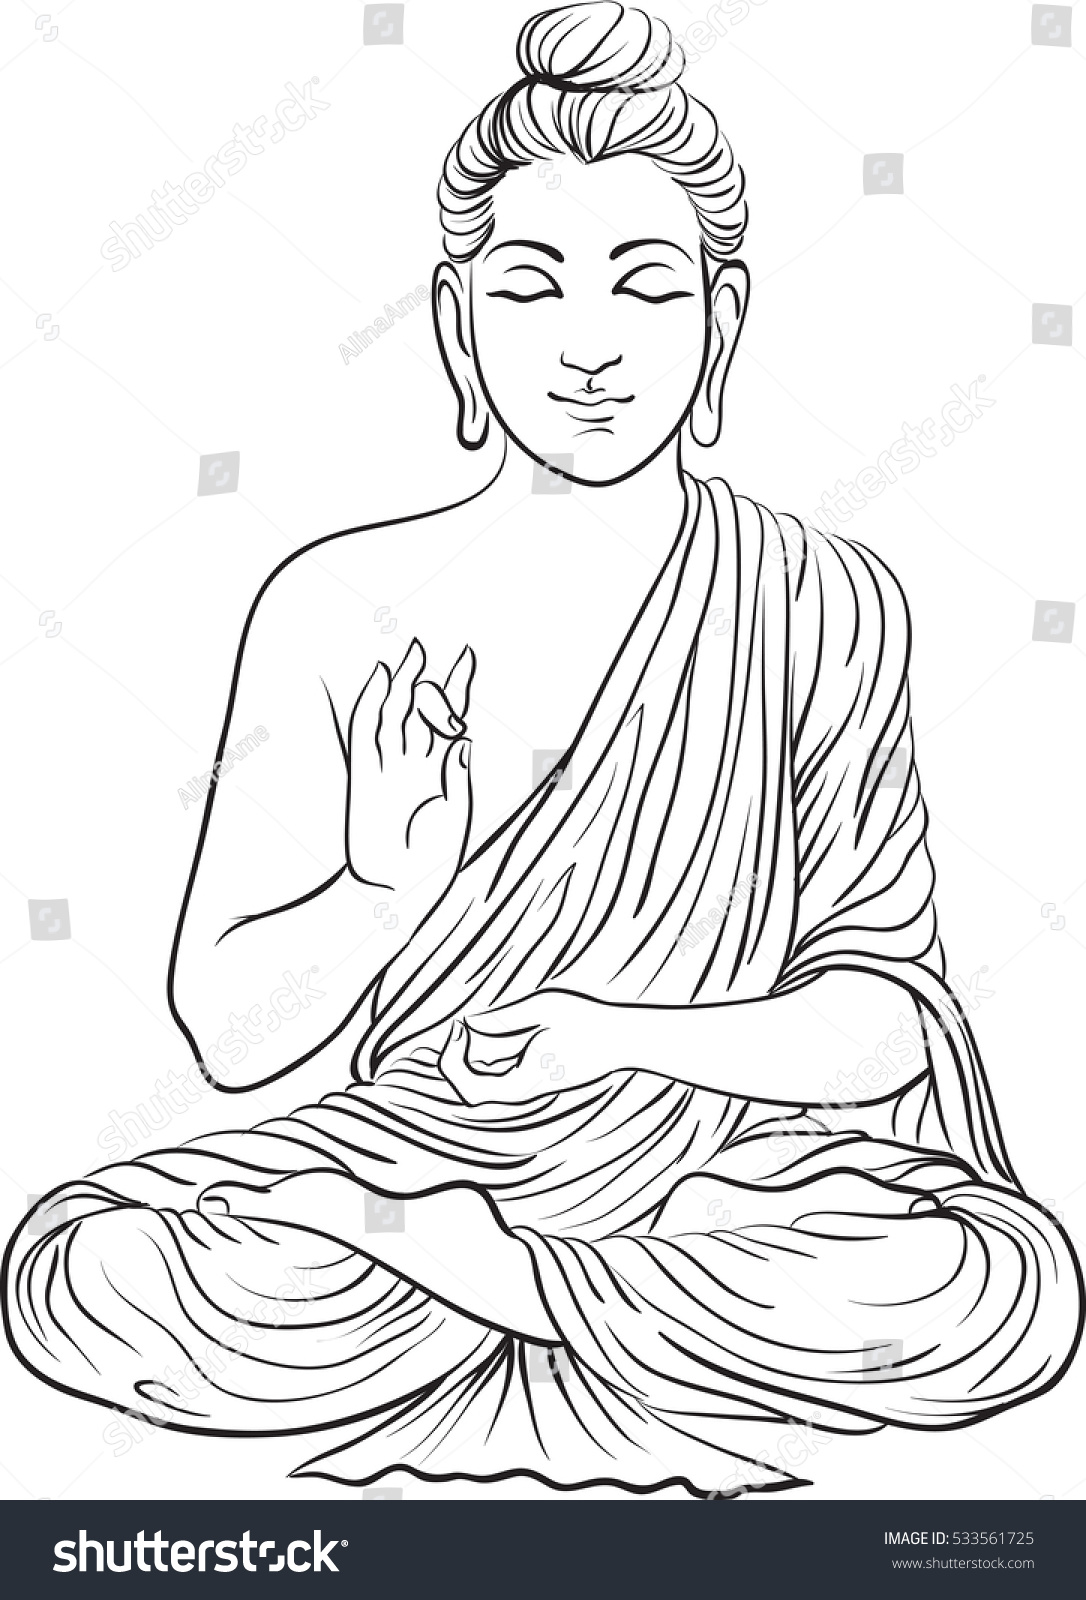 Drawing of a buddha statue art vector illustration of gautama buddhism religion 533561725